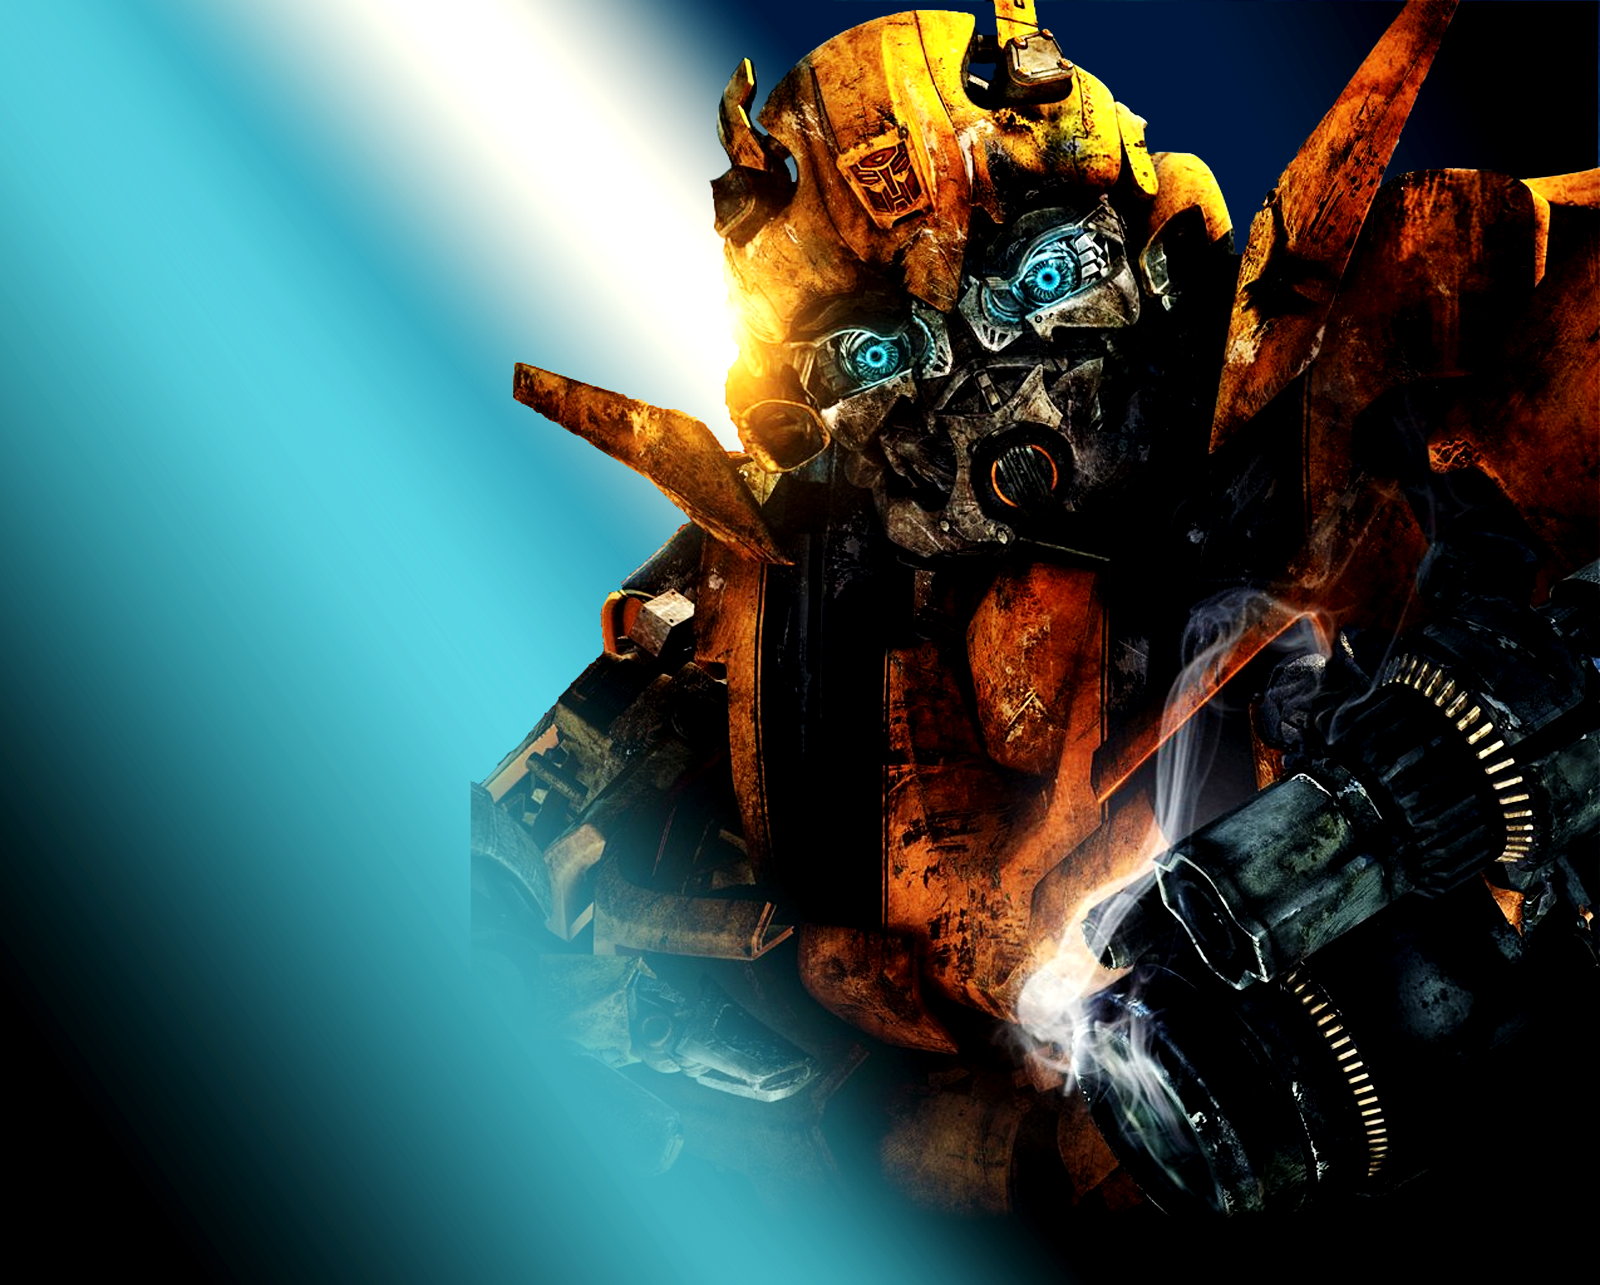 Bumblebee transformers hd wallpapers desktop wallpapers - Transformers desktop backgrounds ...